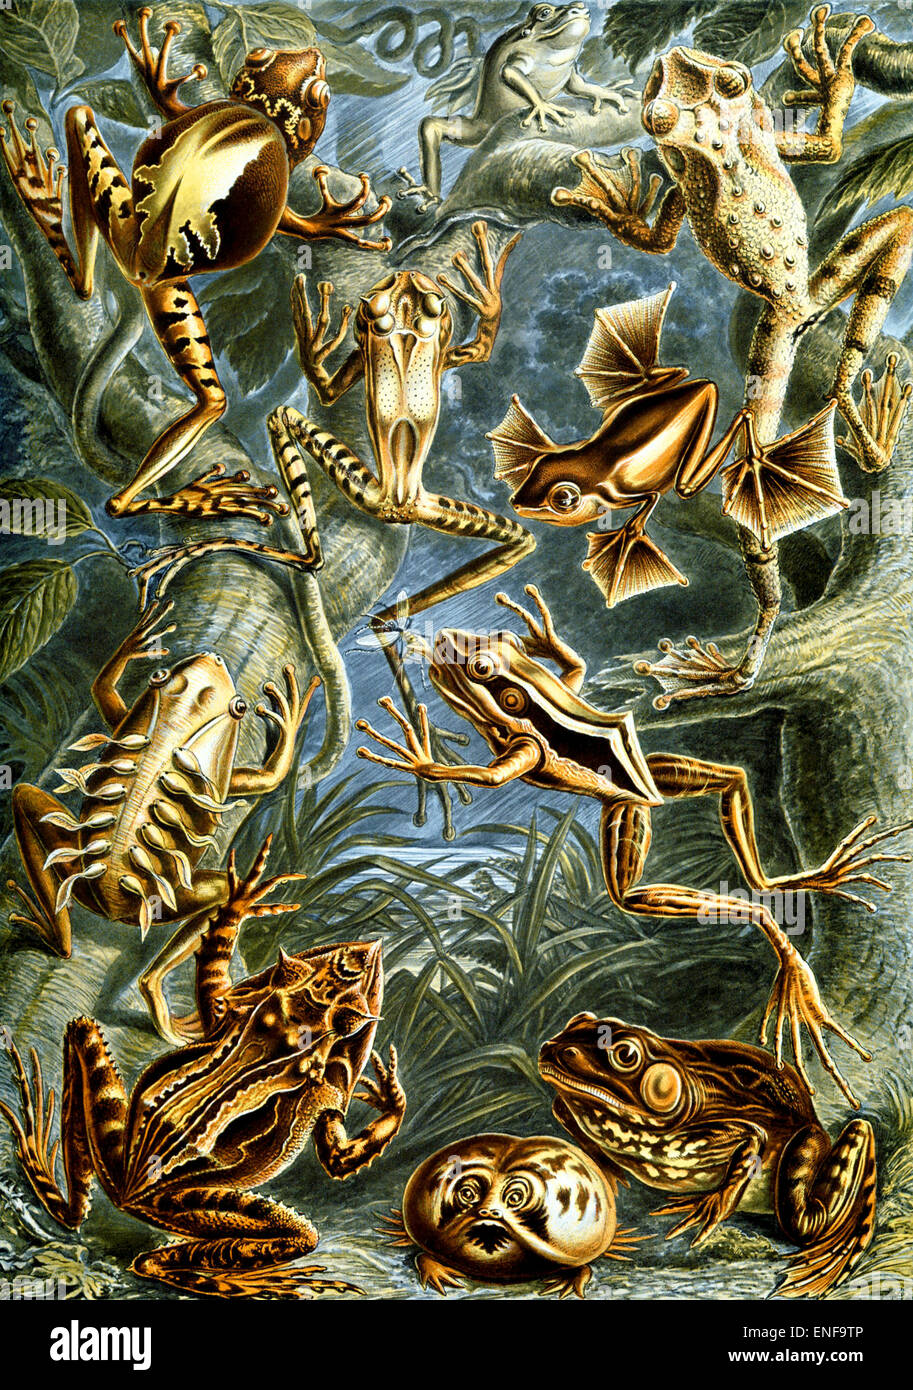 Batrachia (Amphibians), by Ernst Haeckel, 1904 - Editorial use only. - Stock Image